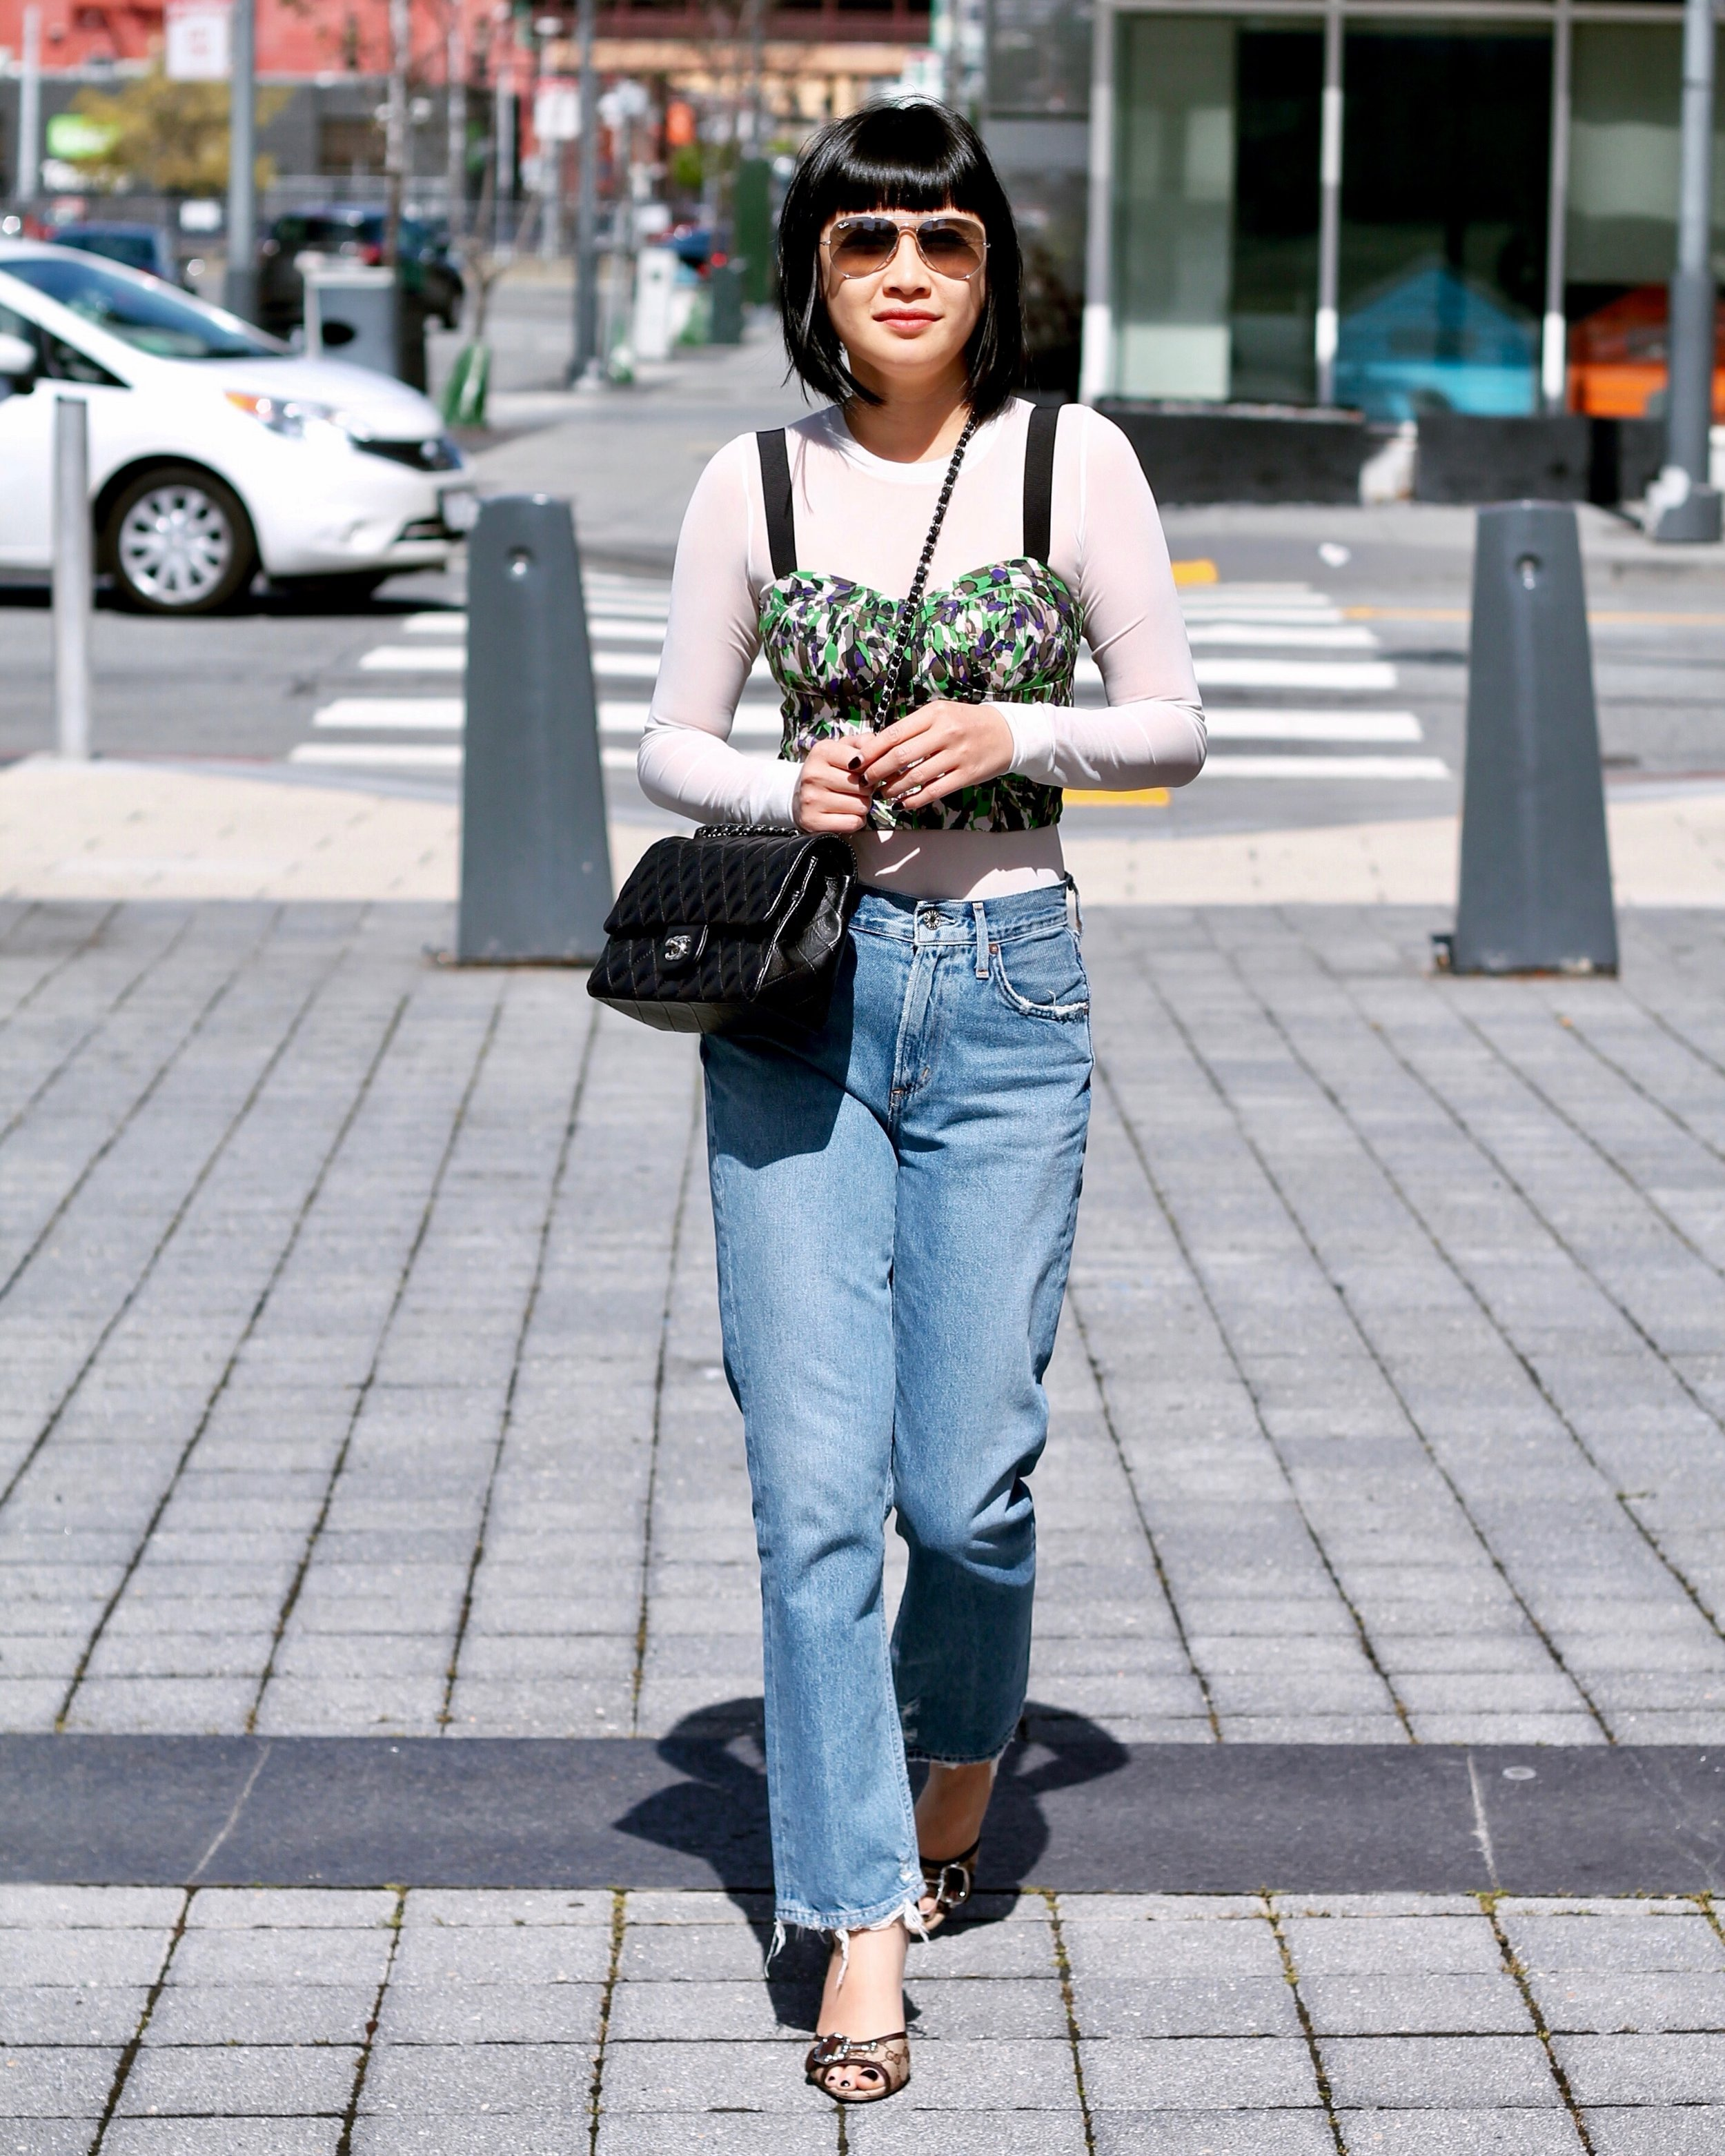 Club Monaco bustier top, Aritzia   t-shirt, Gucci shoes, Chanel bag, Ray-Ban sunglasses